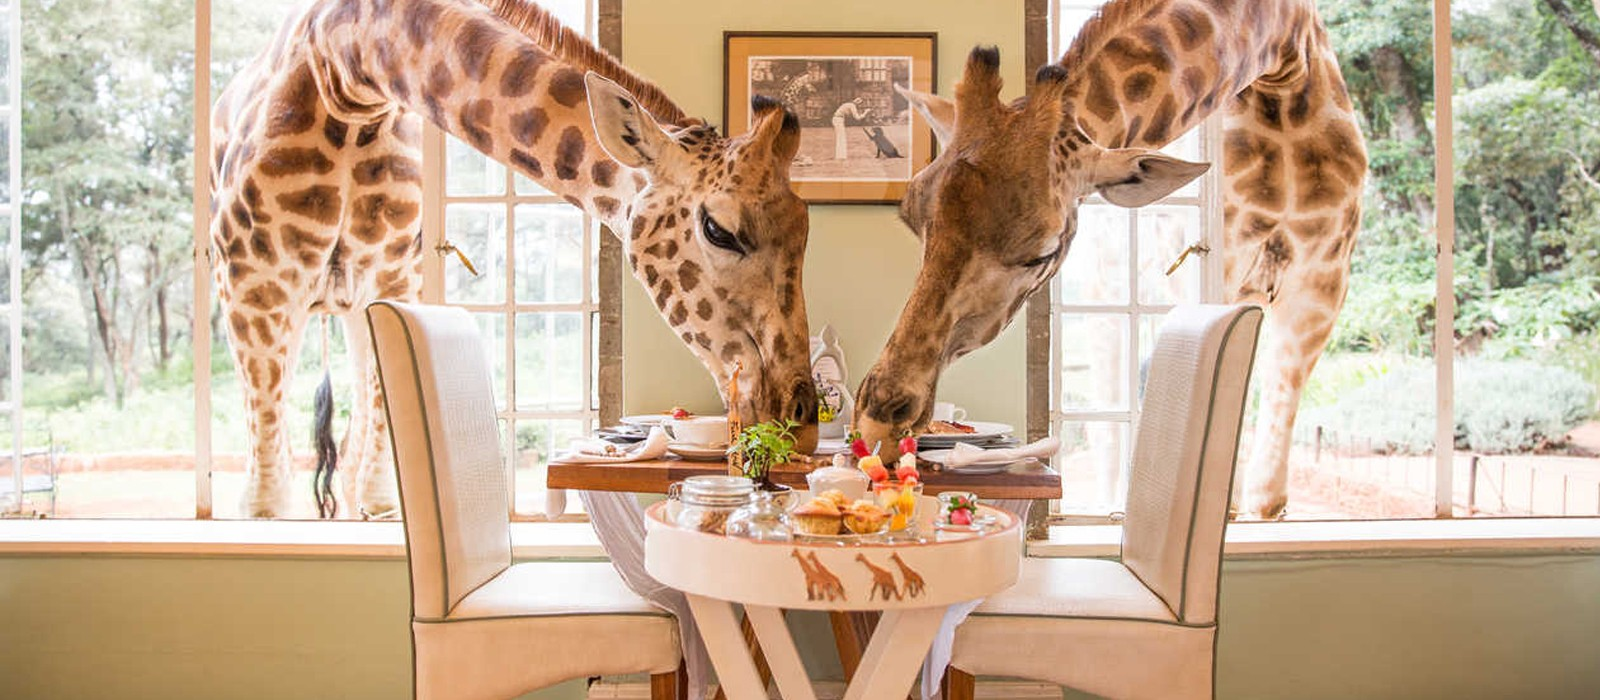 header - Giraffe Manor - Luxury Kenyan Honeymoon Packages